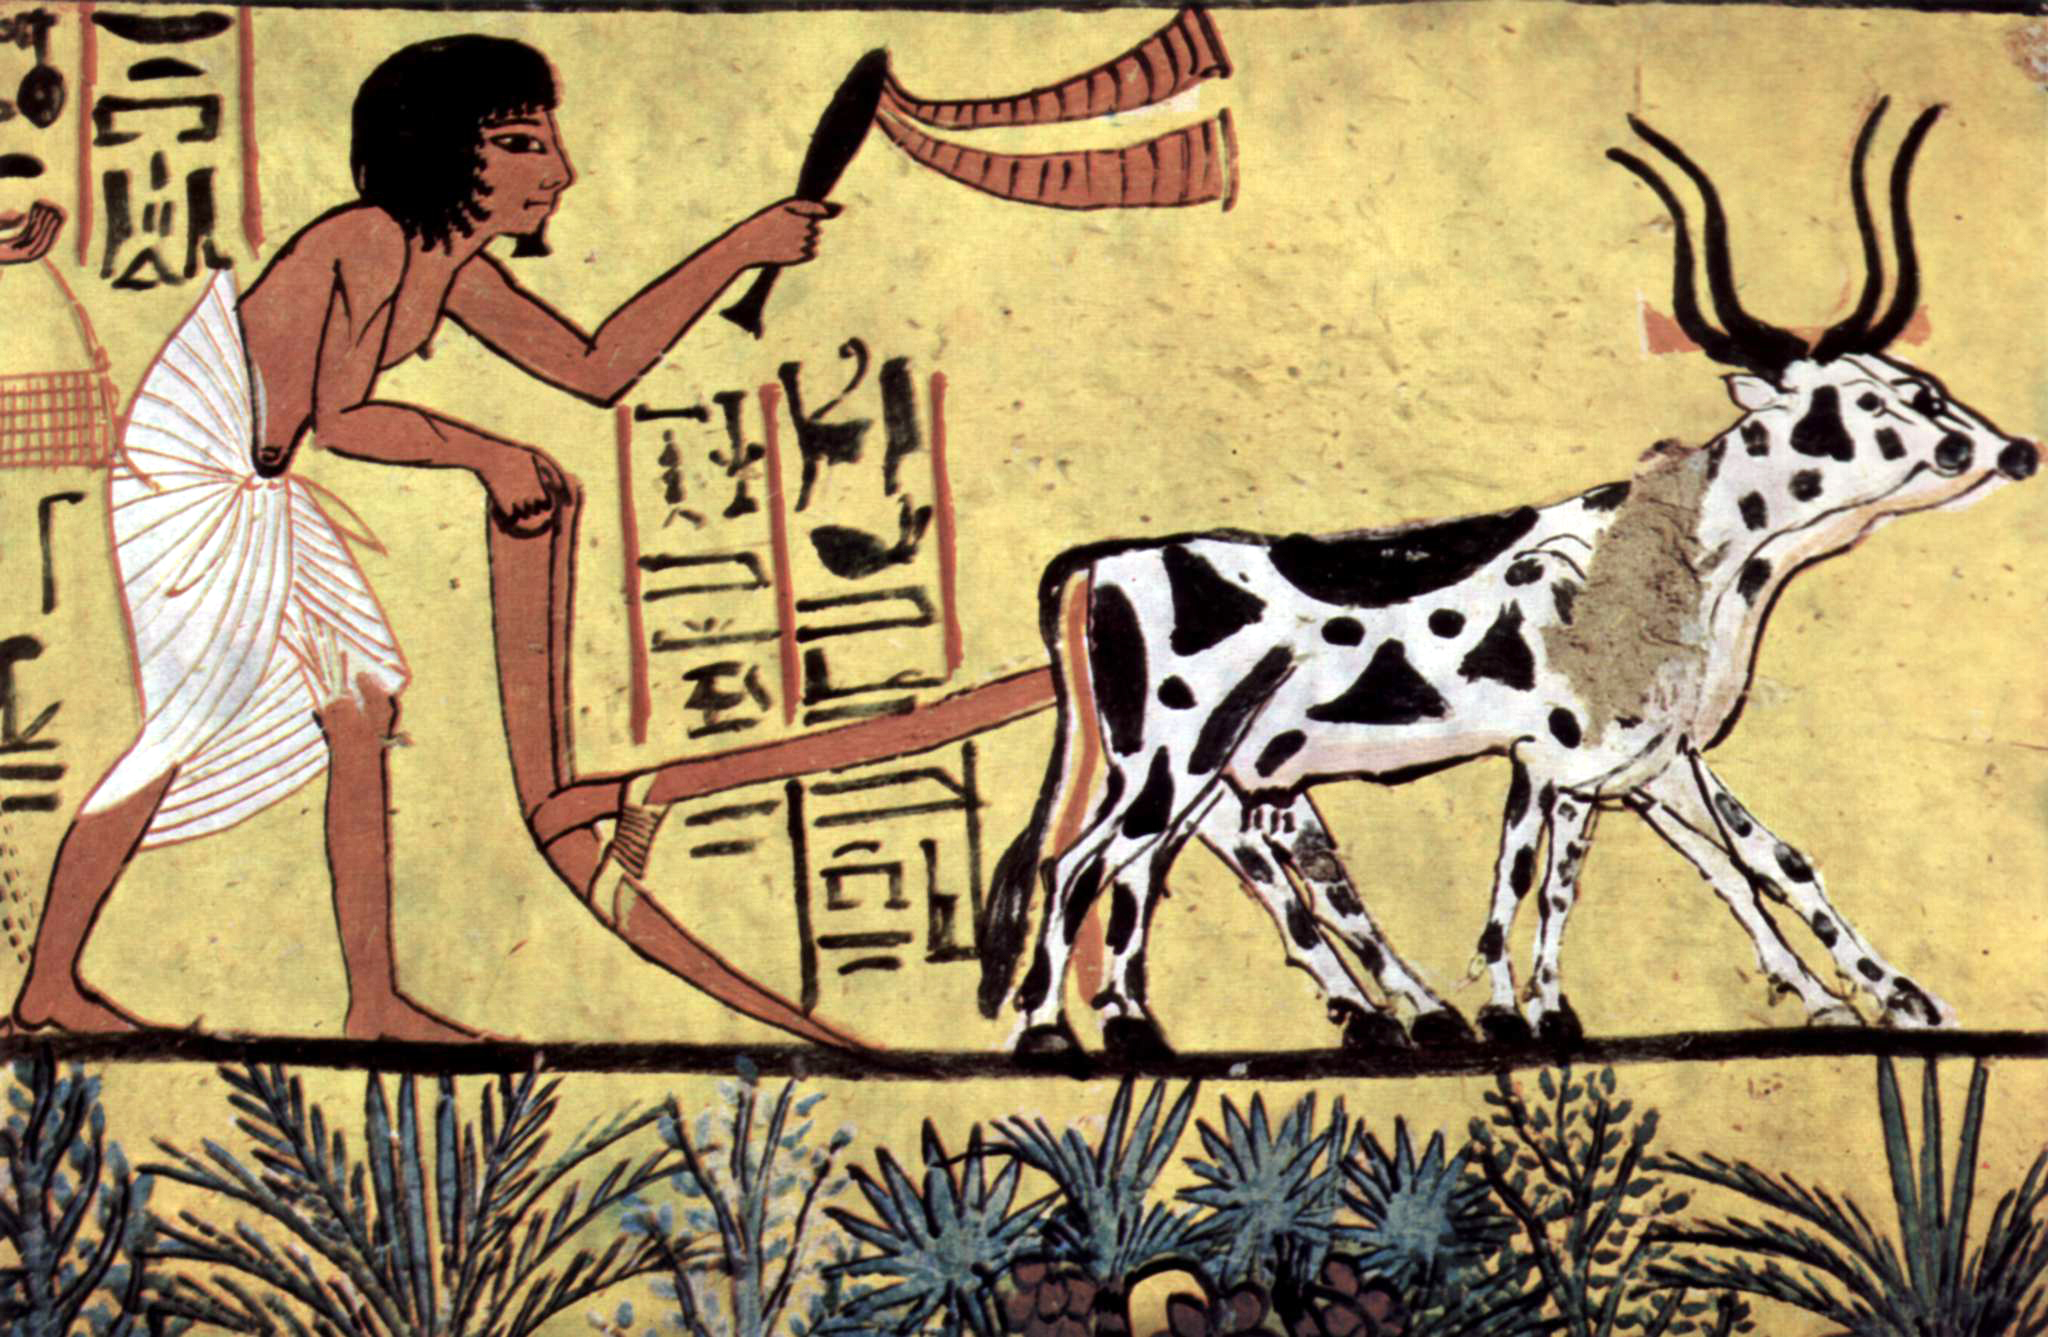 Egyptian painting of agriculture